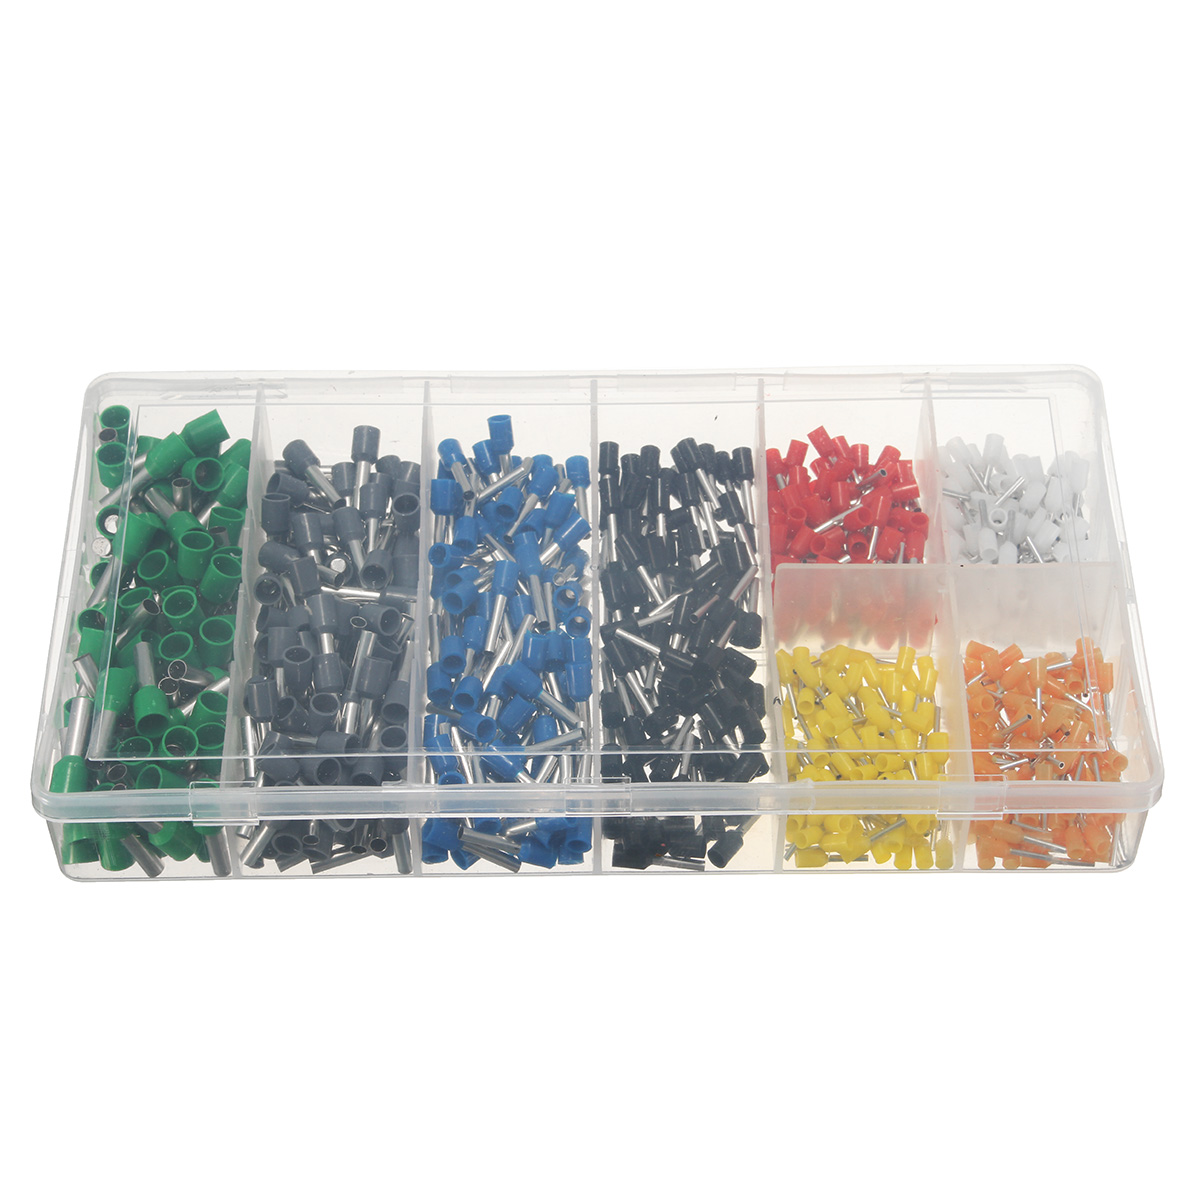 Excellway® Assorted Insulated Electrical Wire Terminals Connectors Crimp Set 800Pcs